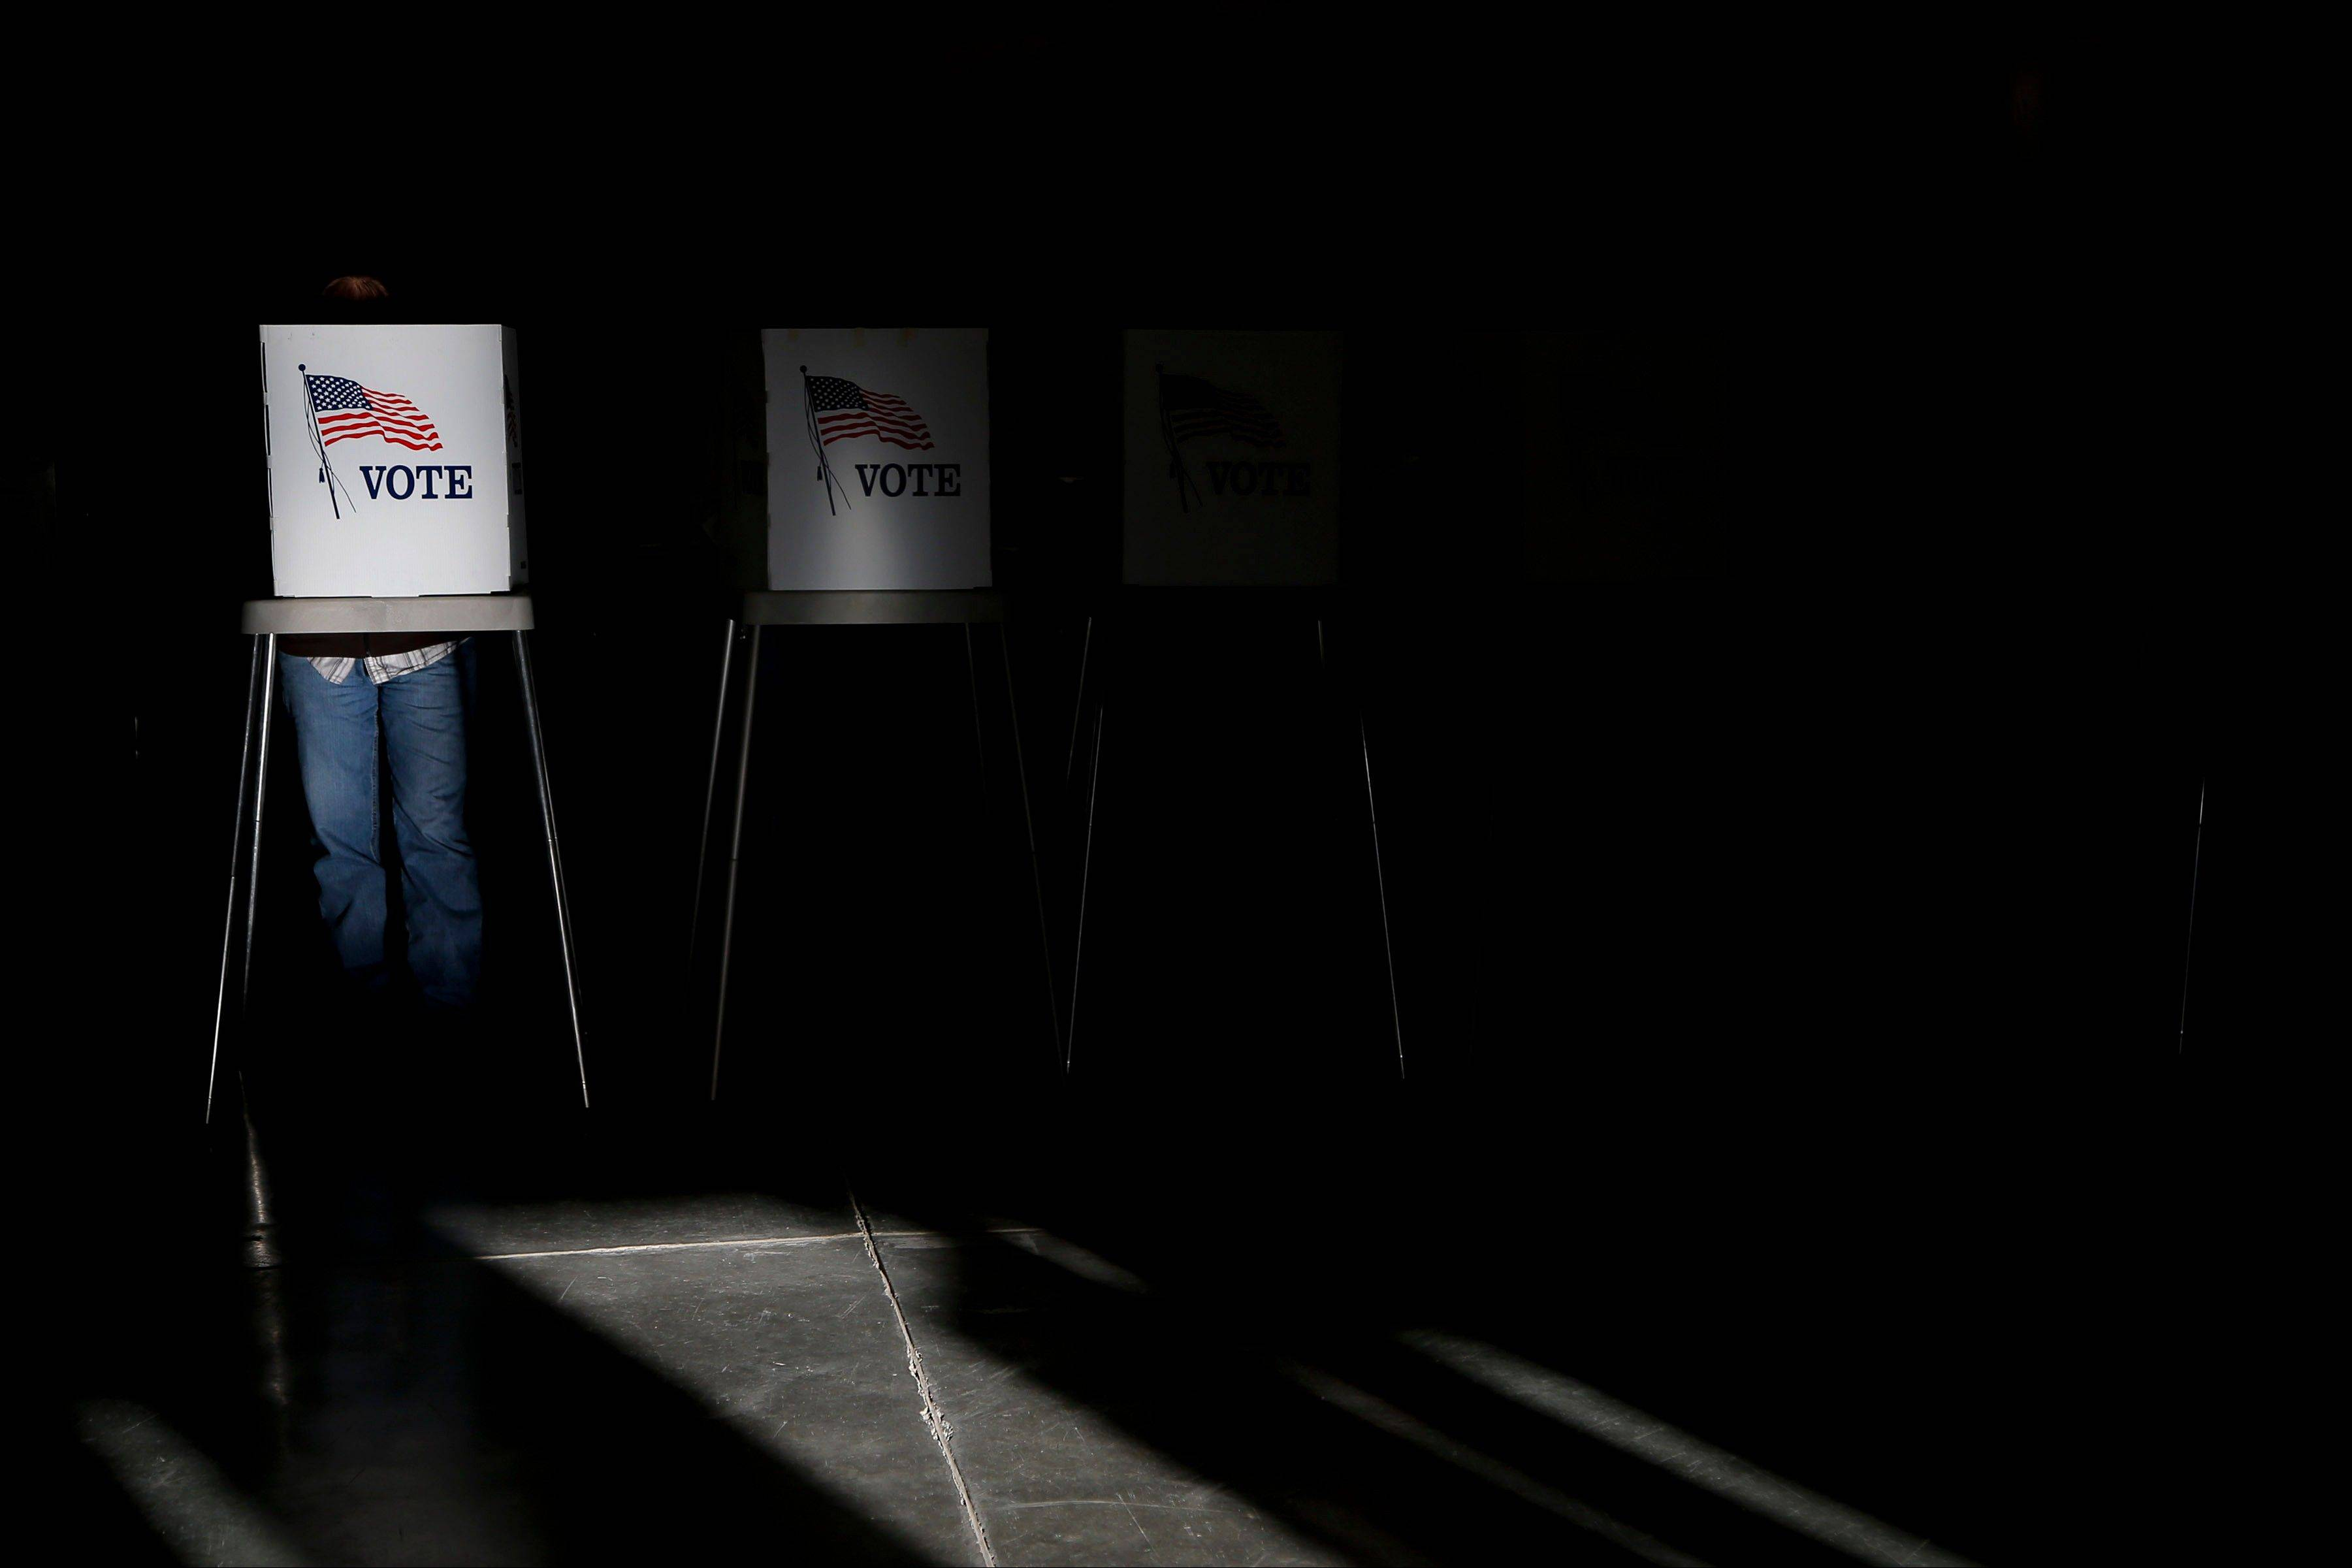 Voting booths are illuminated by sunlight as voters cast their ballots at a polling place in Billings, Mont., Tuesday, Nov. 6, 2012.